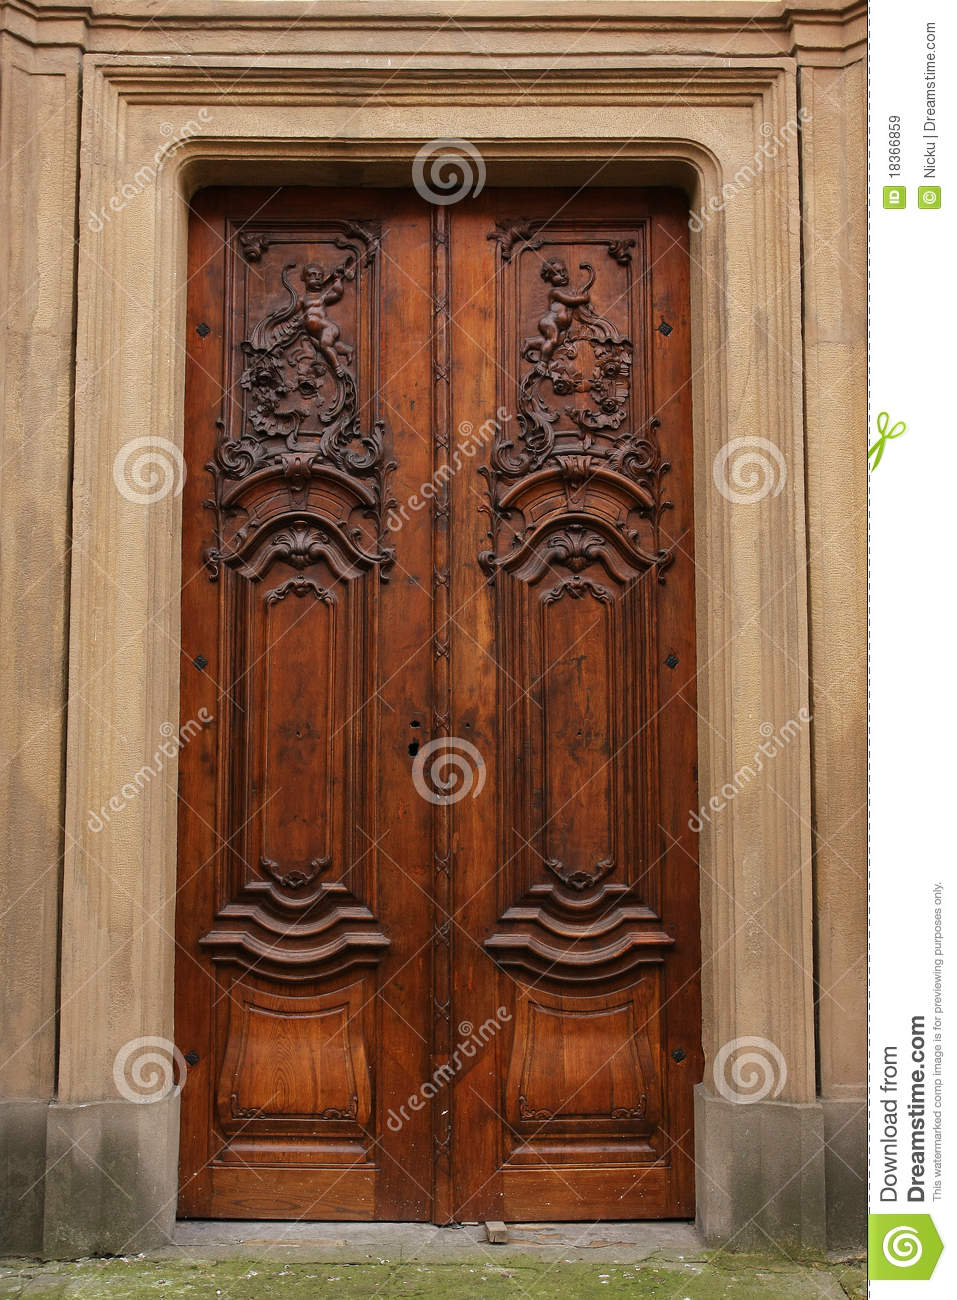 Royalty-Free Stock Photo & Wood door detail stock image. Image of history artistic - 18366859